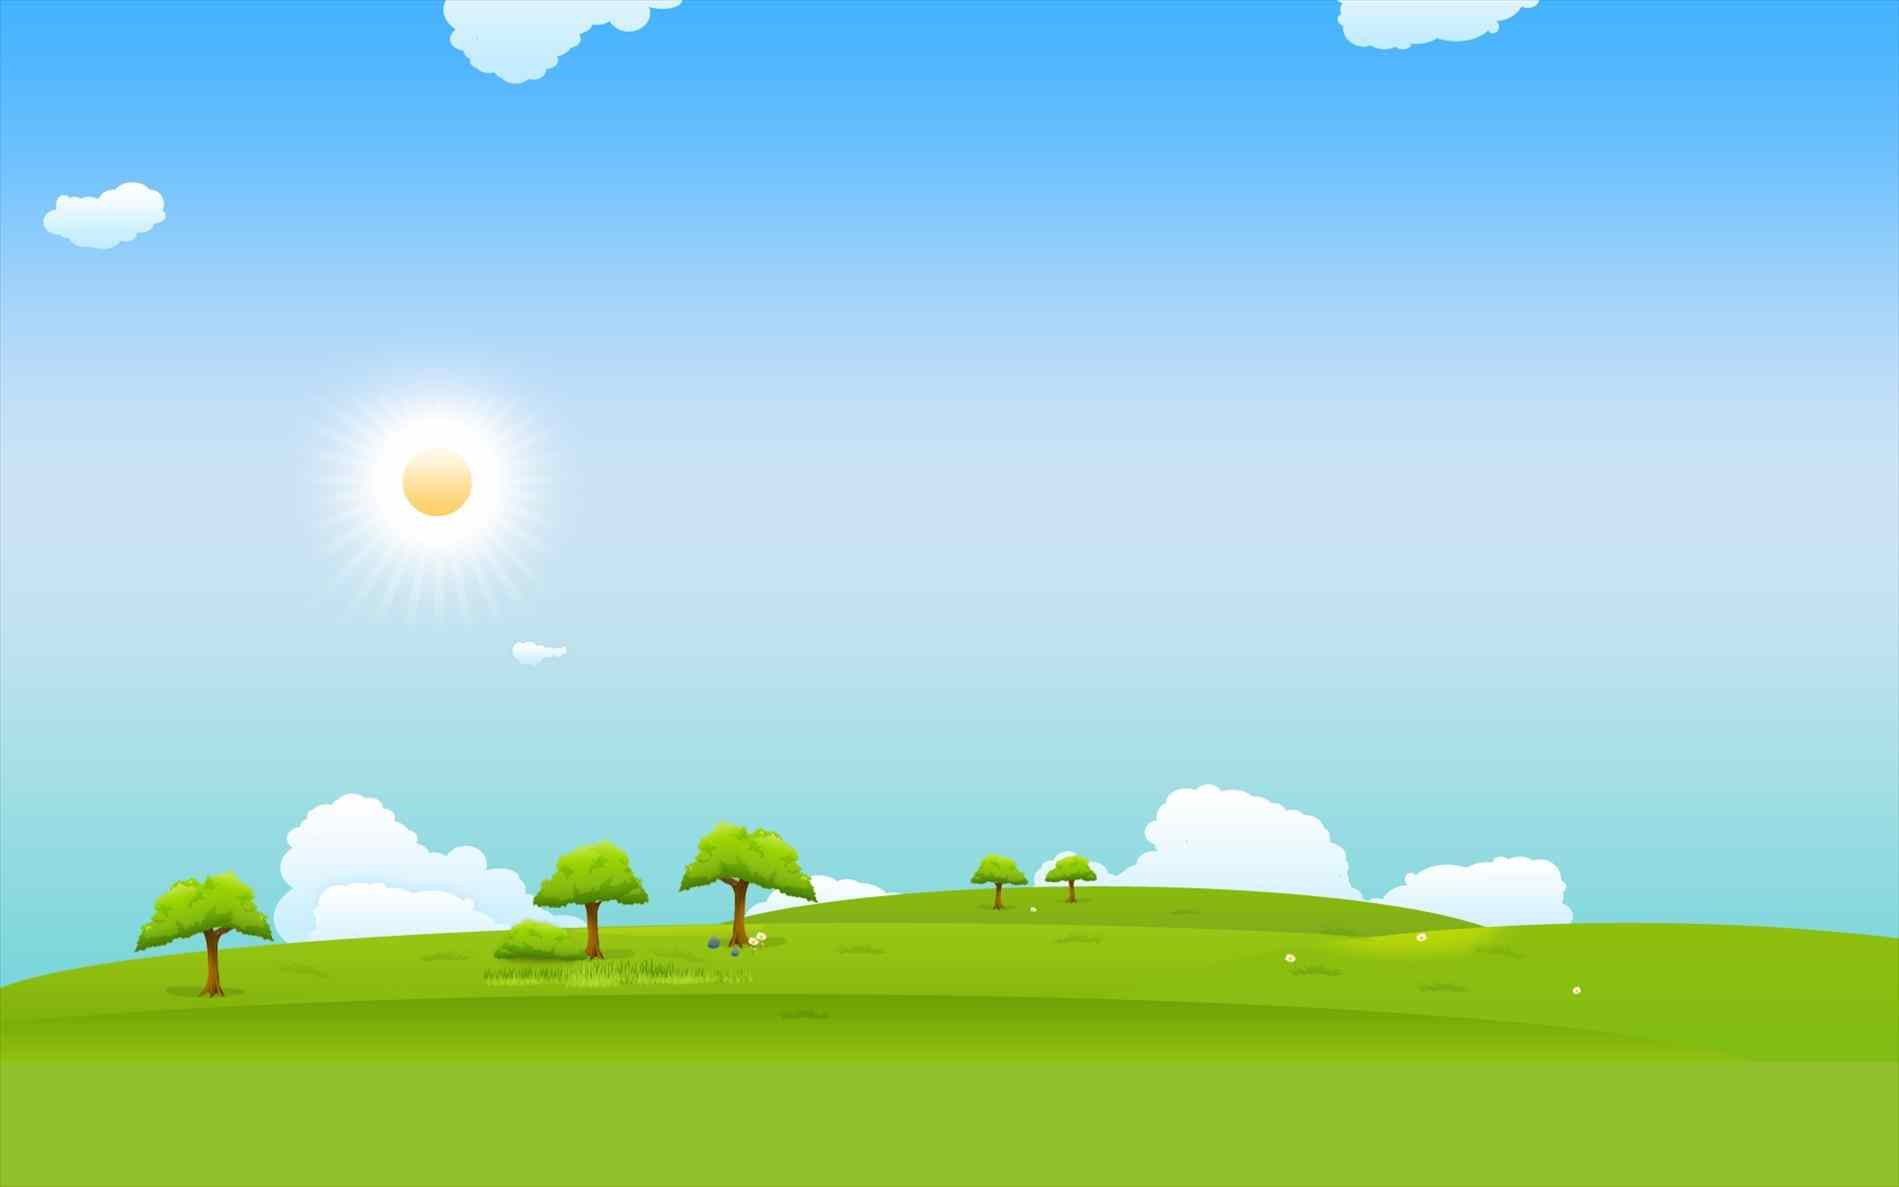 Background clipart. The images collection of